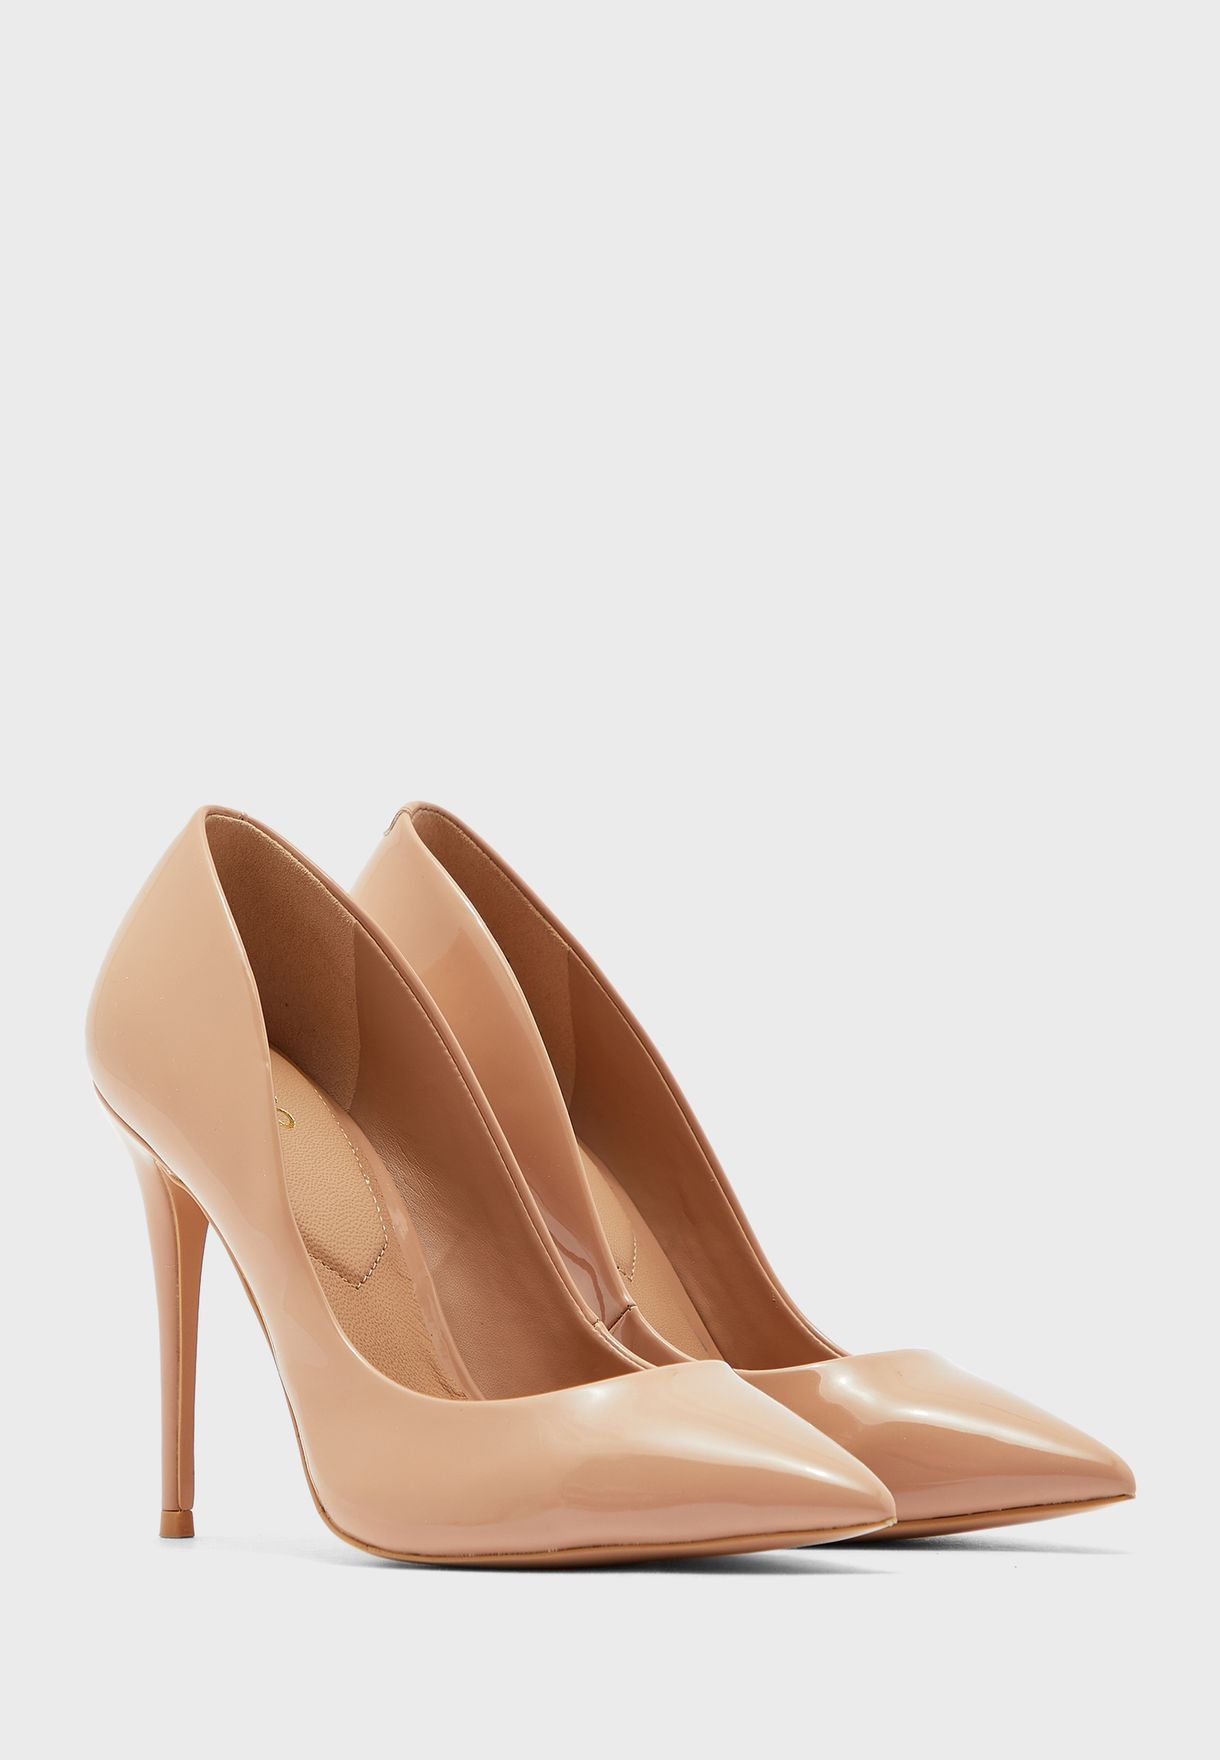 Stessy High Heel Pump